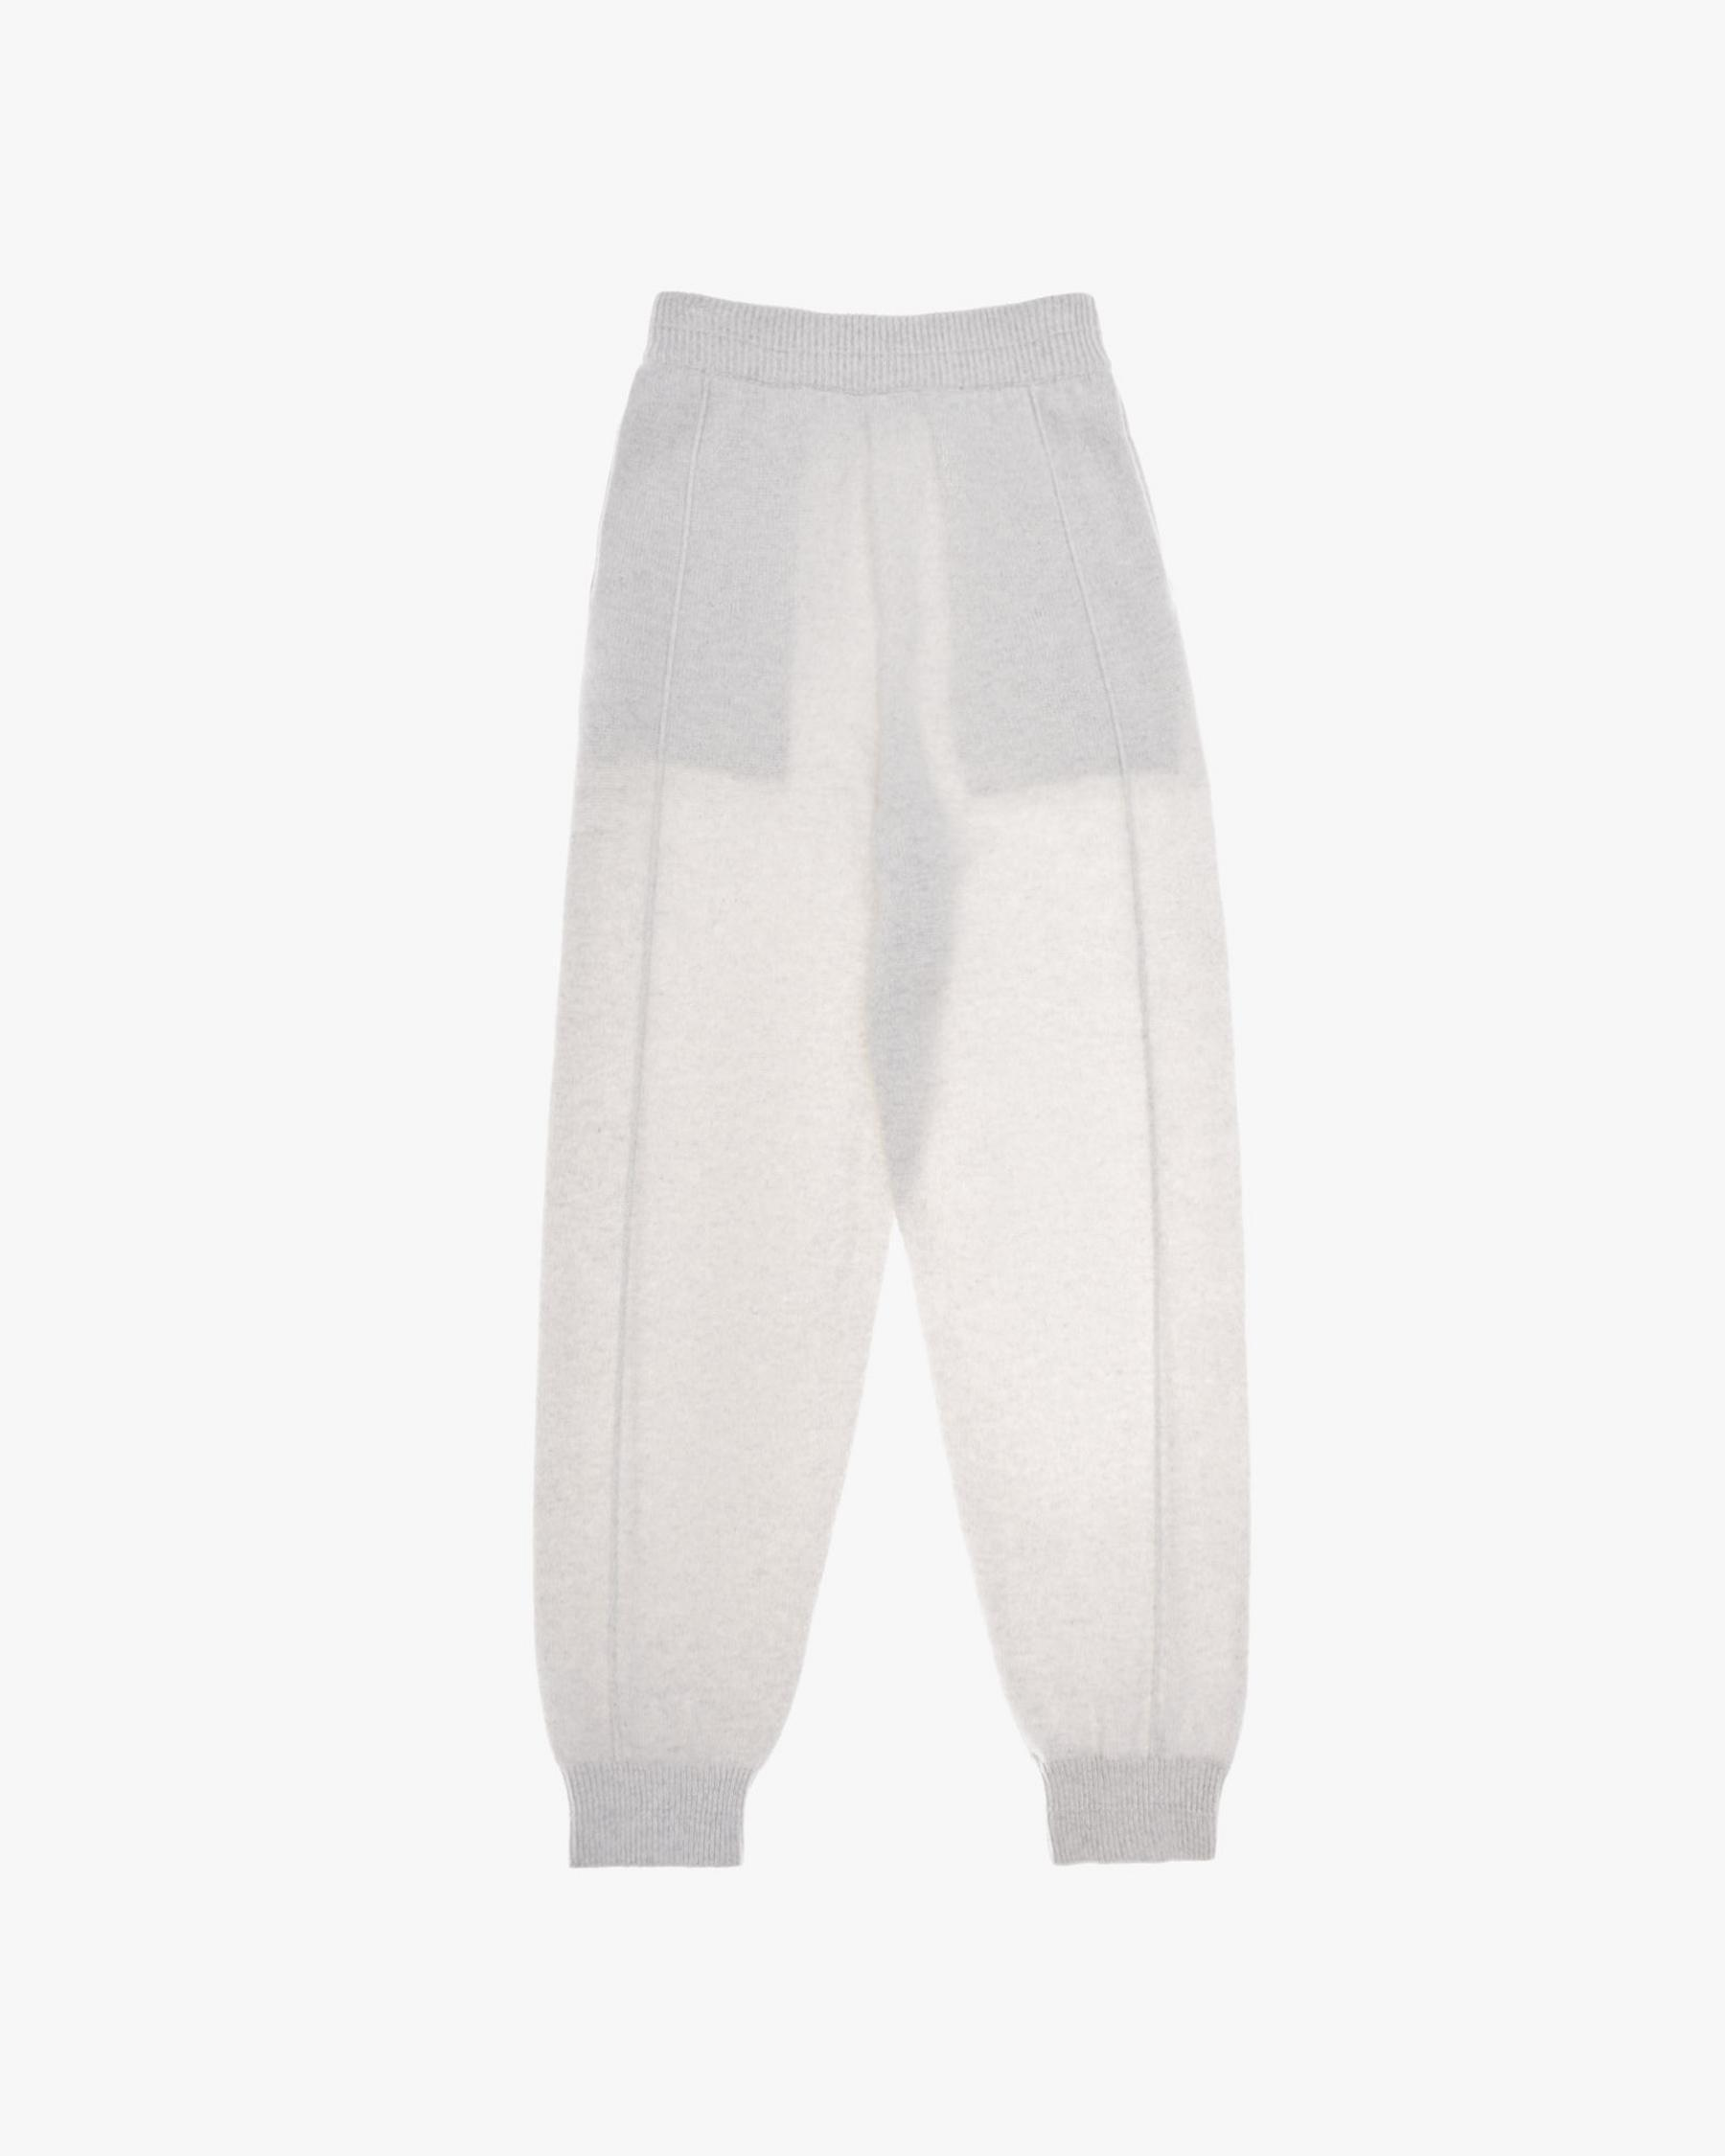 RECYCLED CASHMERE PANT 6